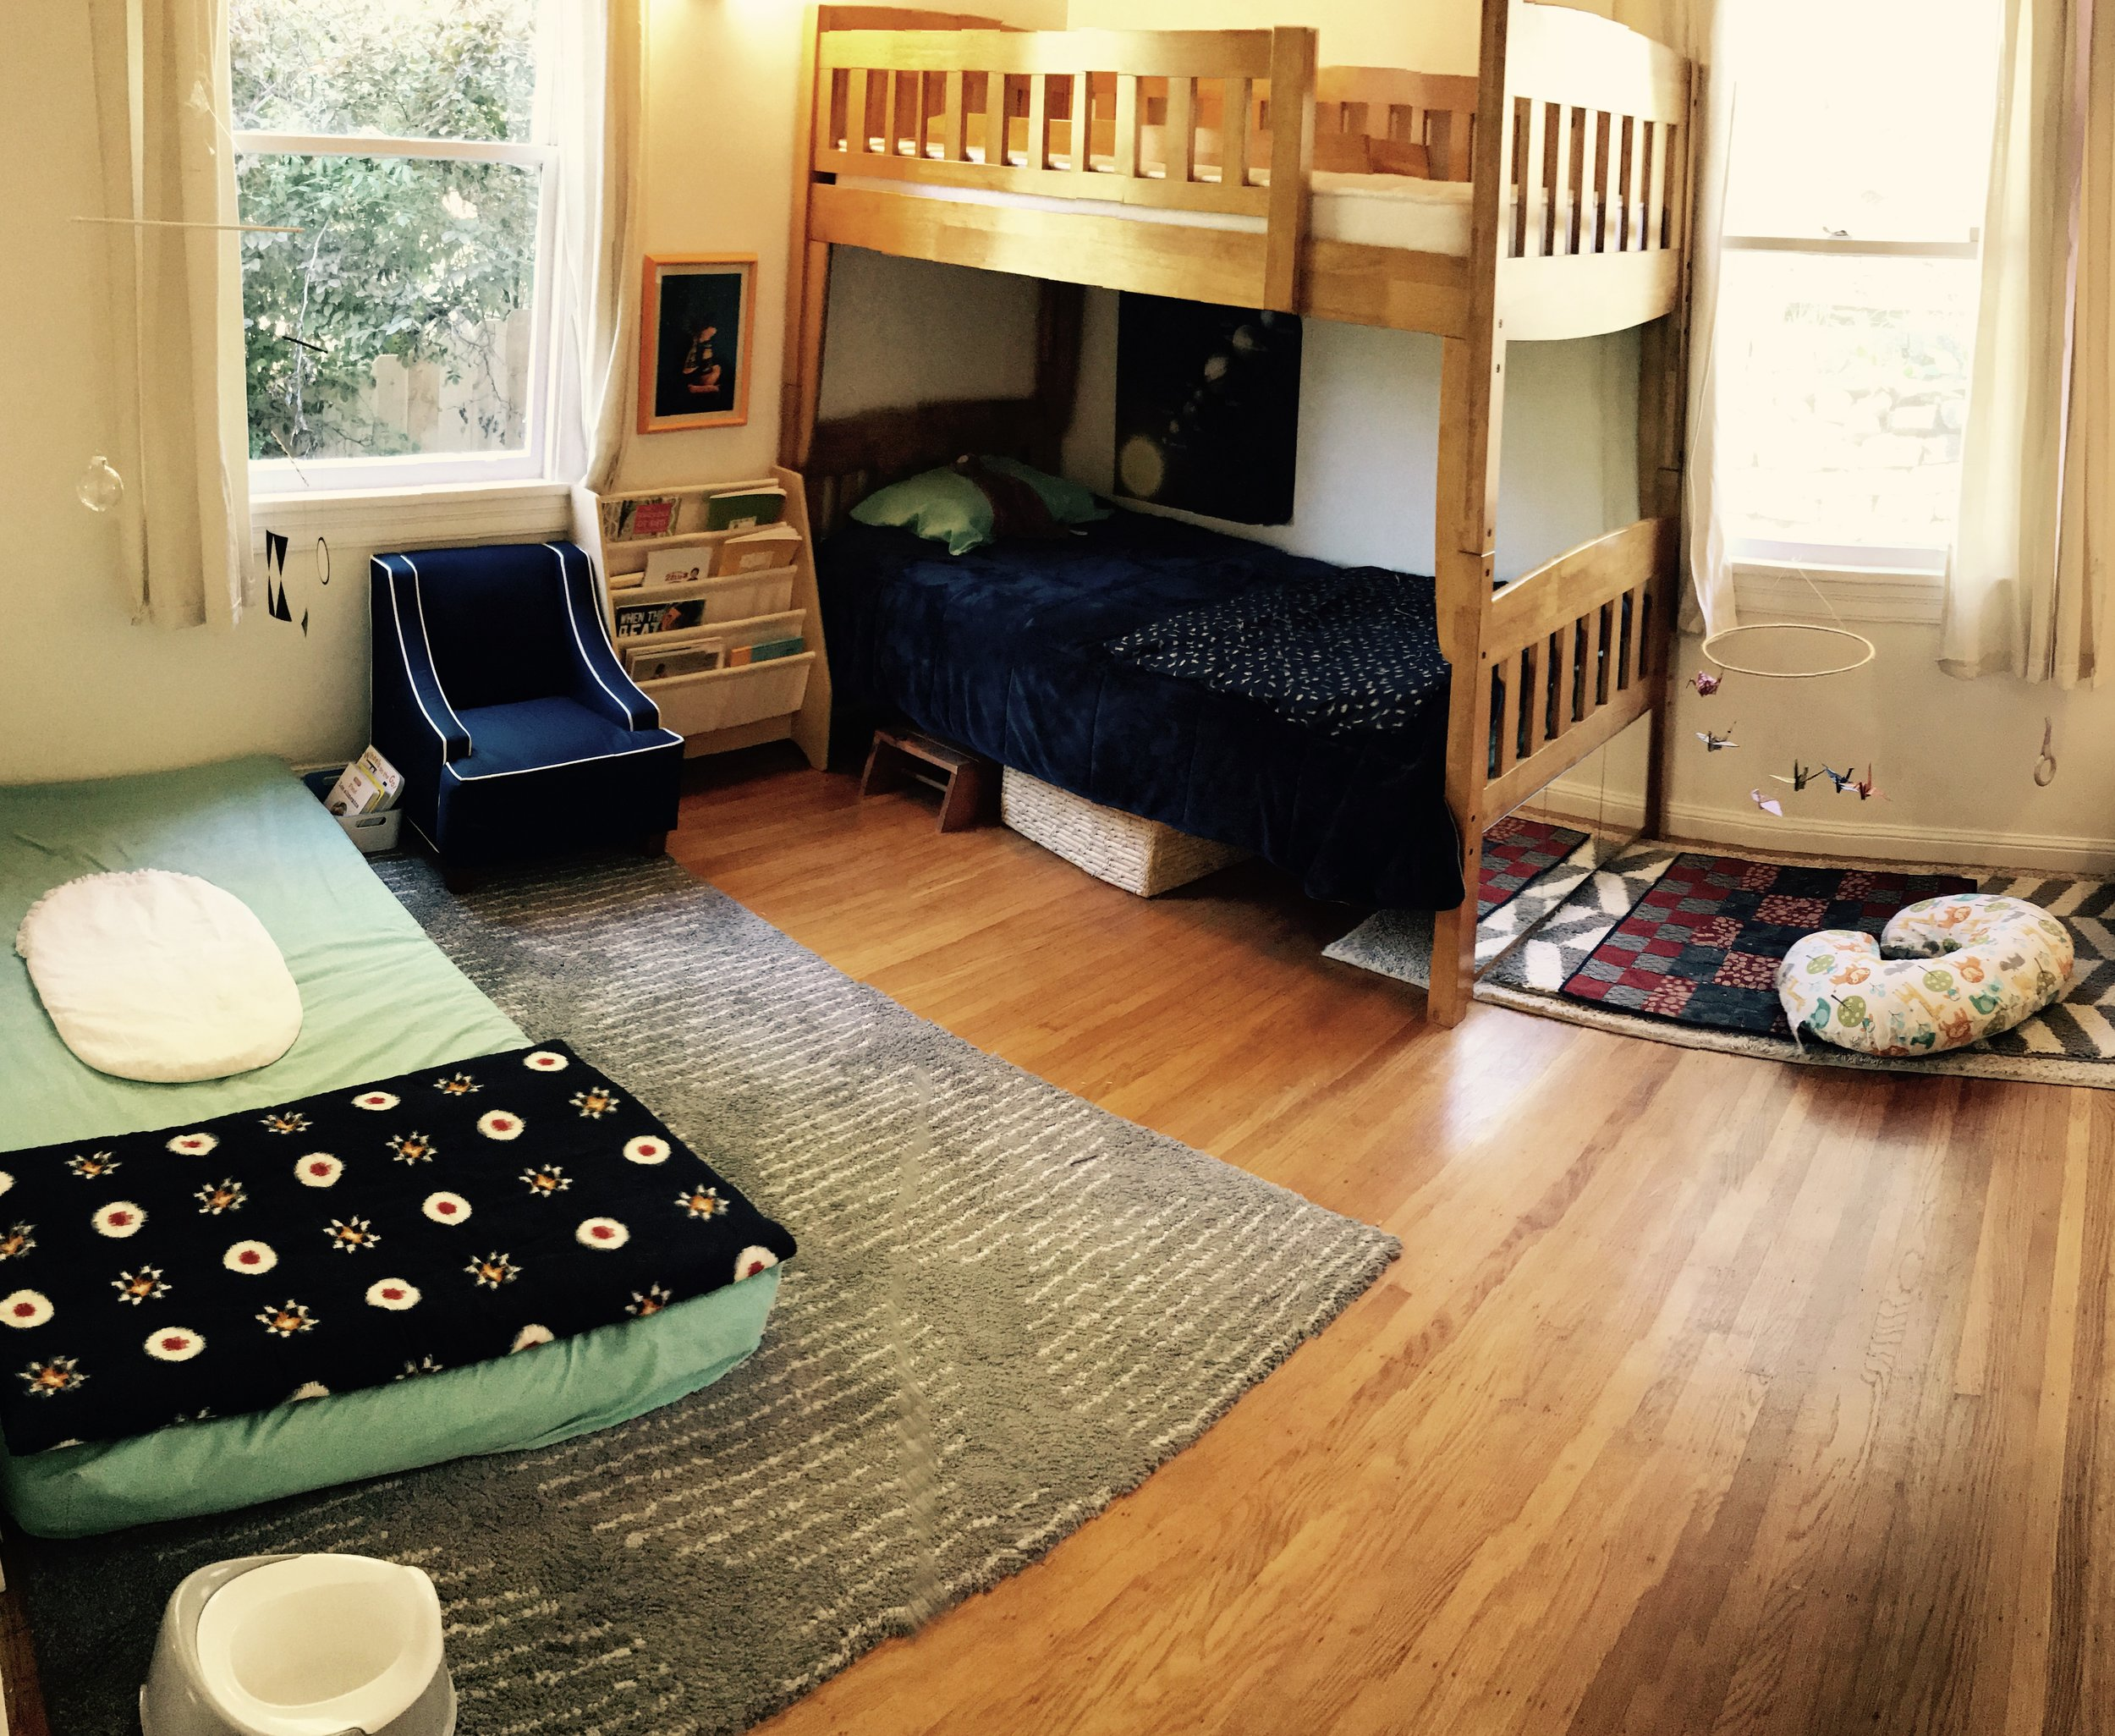 0-5 Months + Toddler Room View.jpg